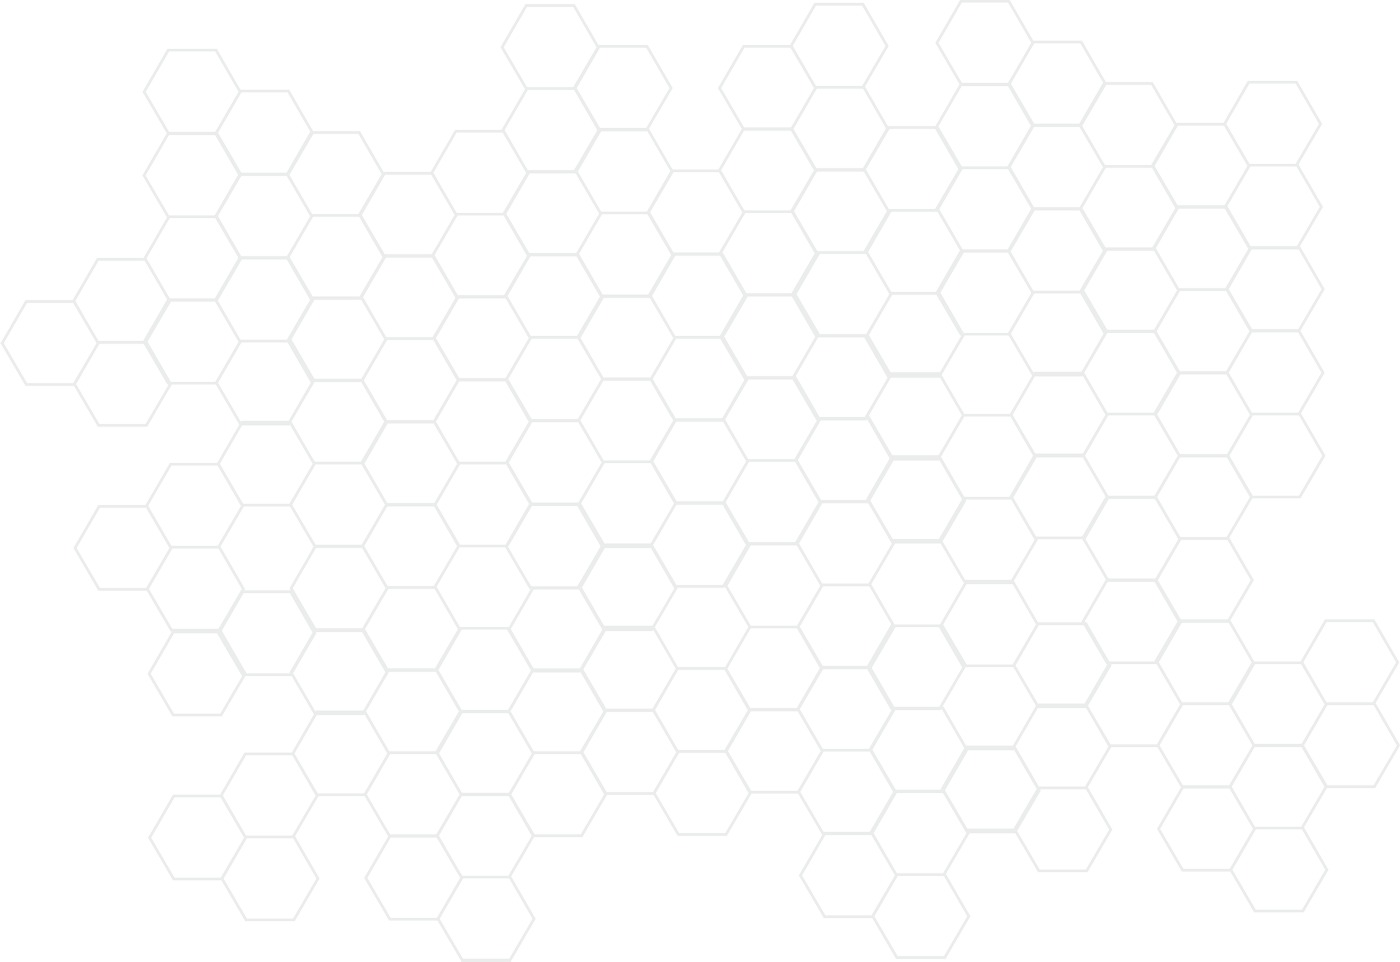 Hexagon background png. Index of images site